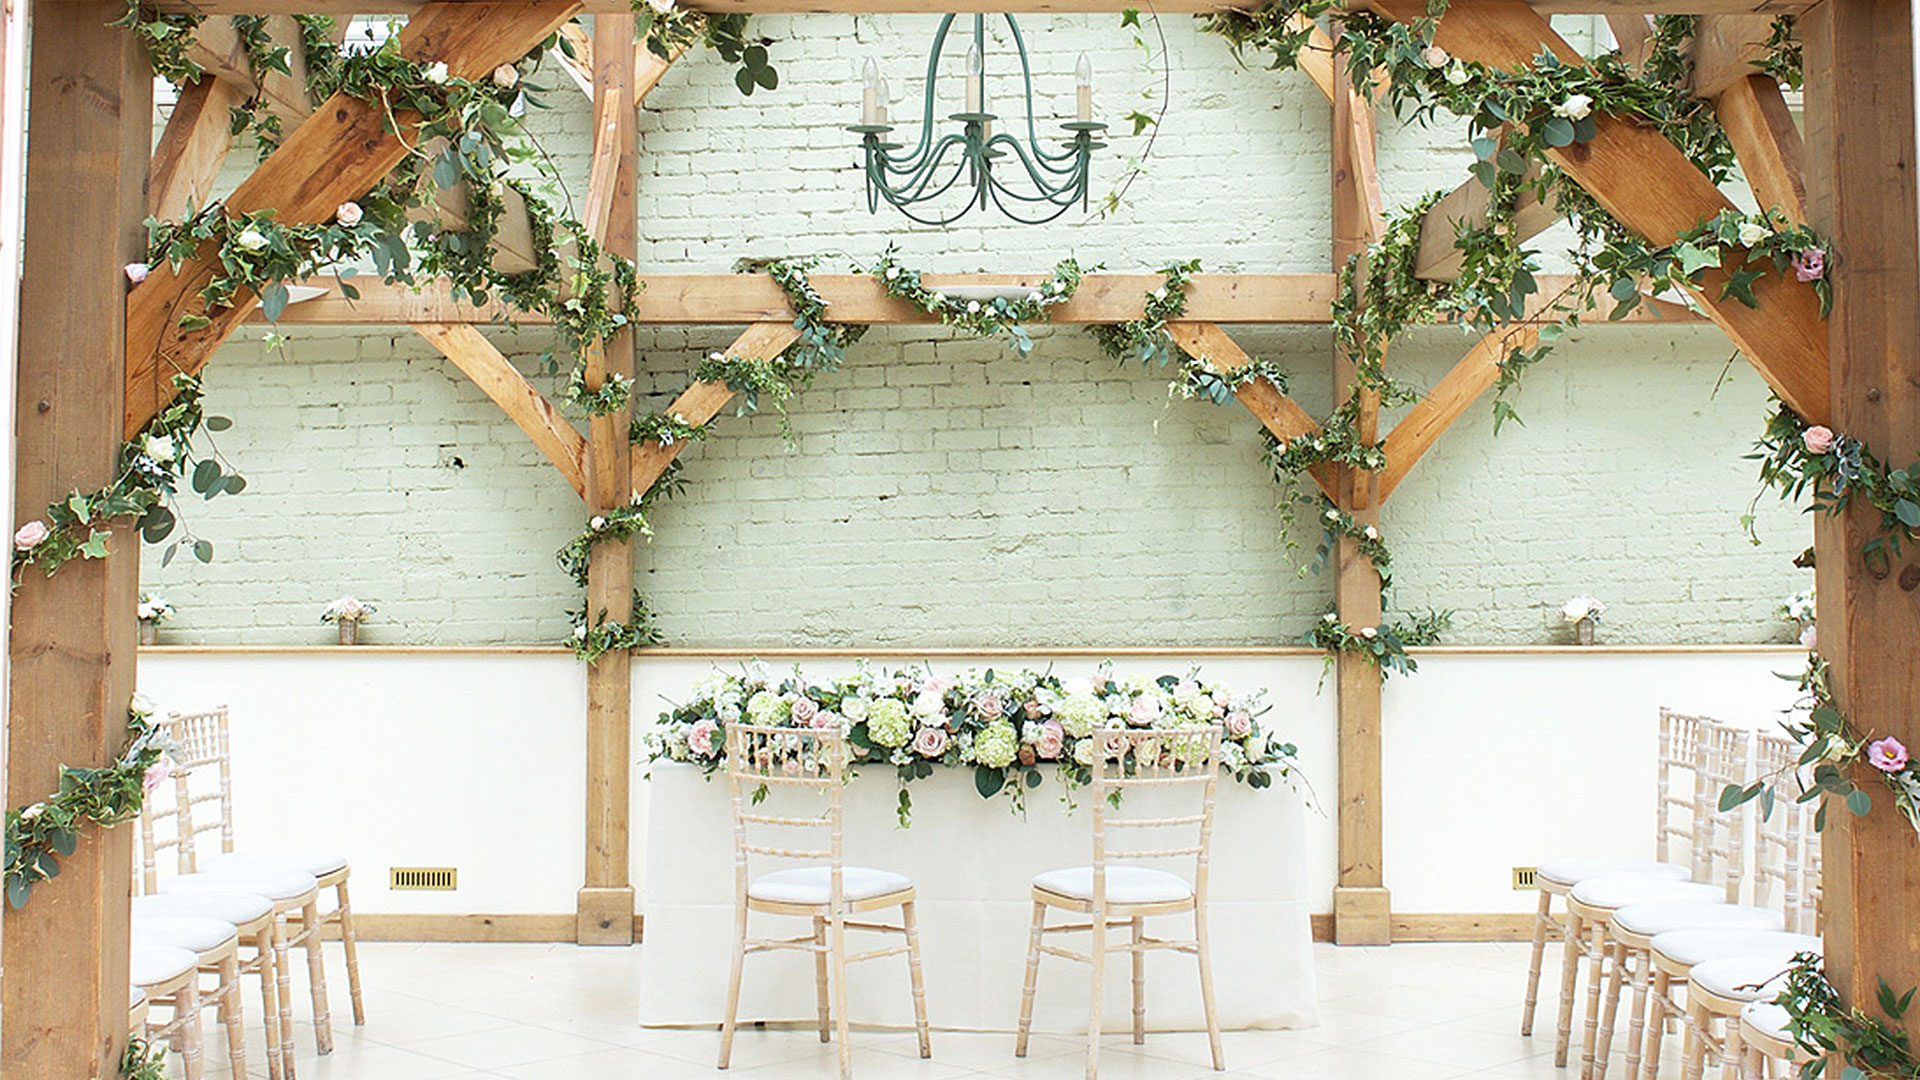 Ivy entwined with white roses is wrapped around the exposed oak beams inside the wedding ceremony Orangery